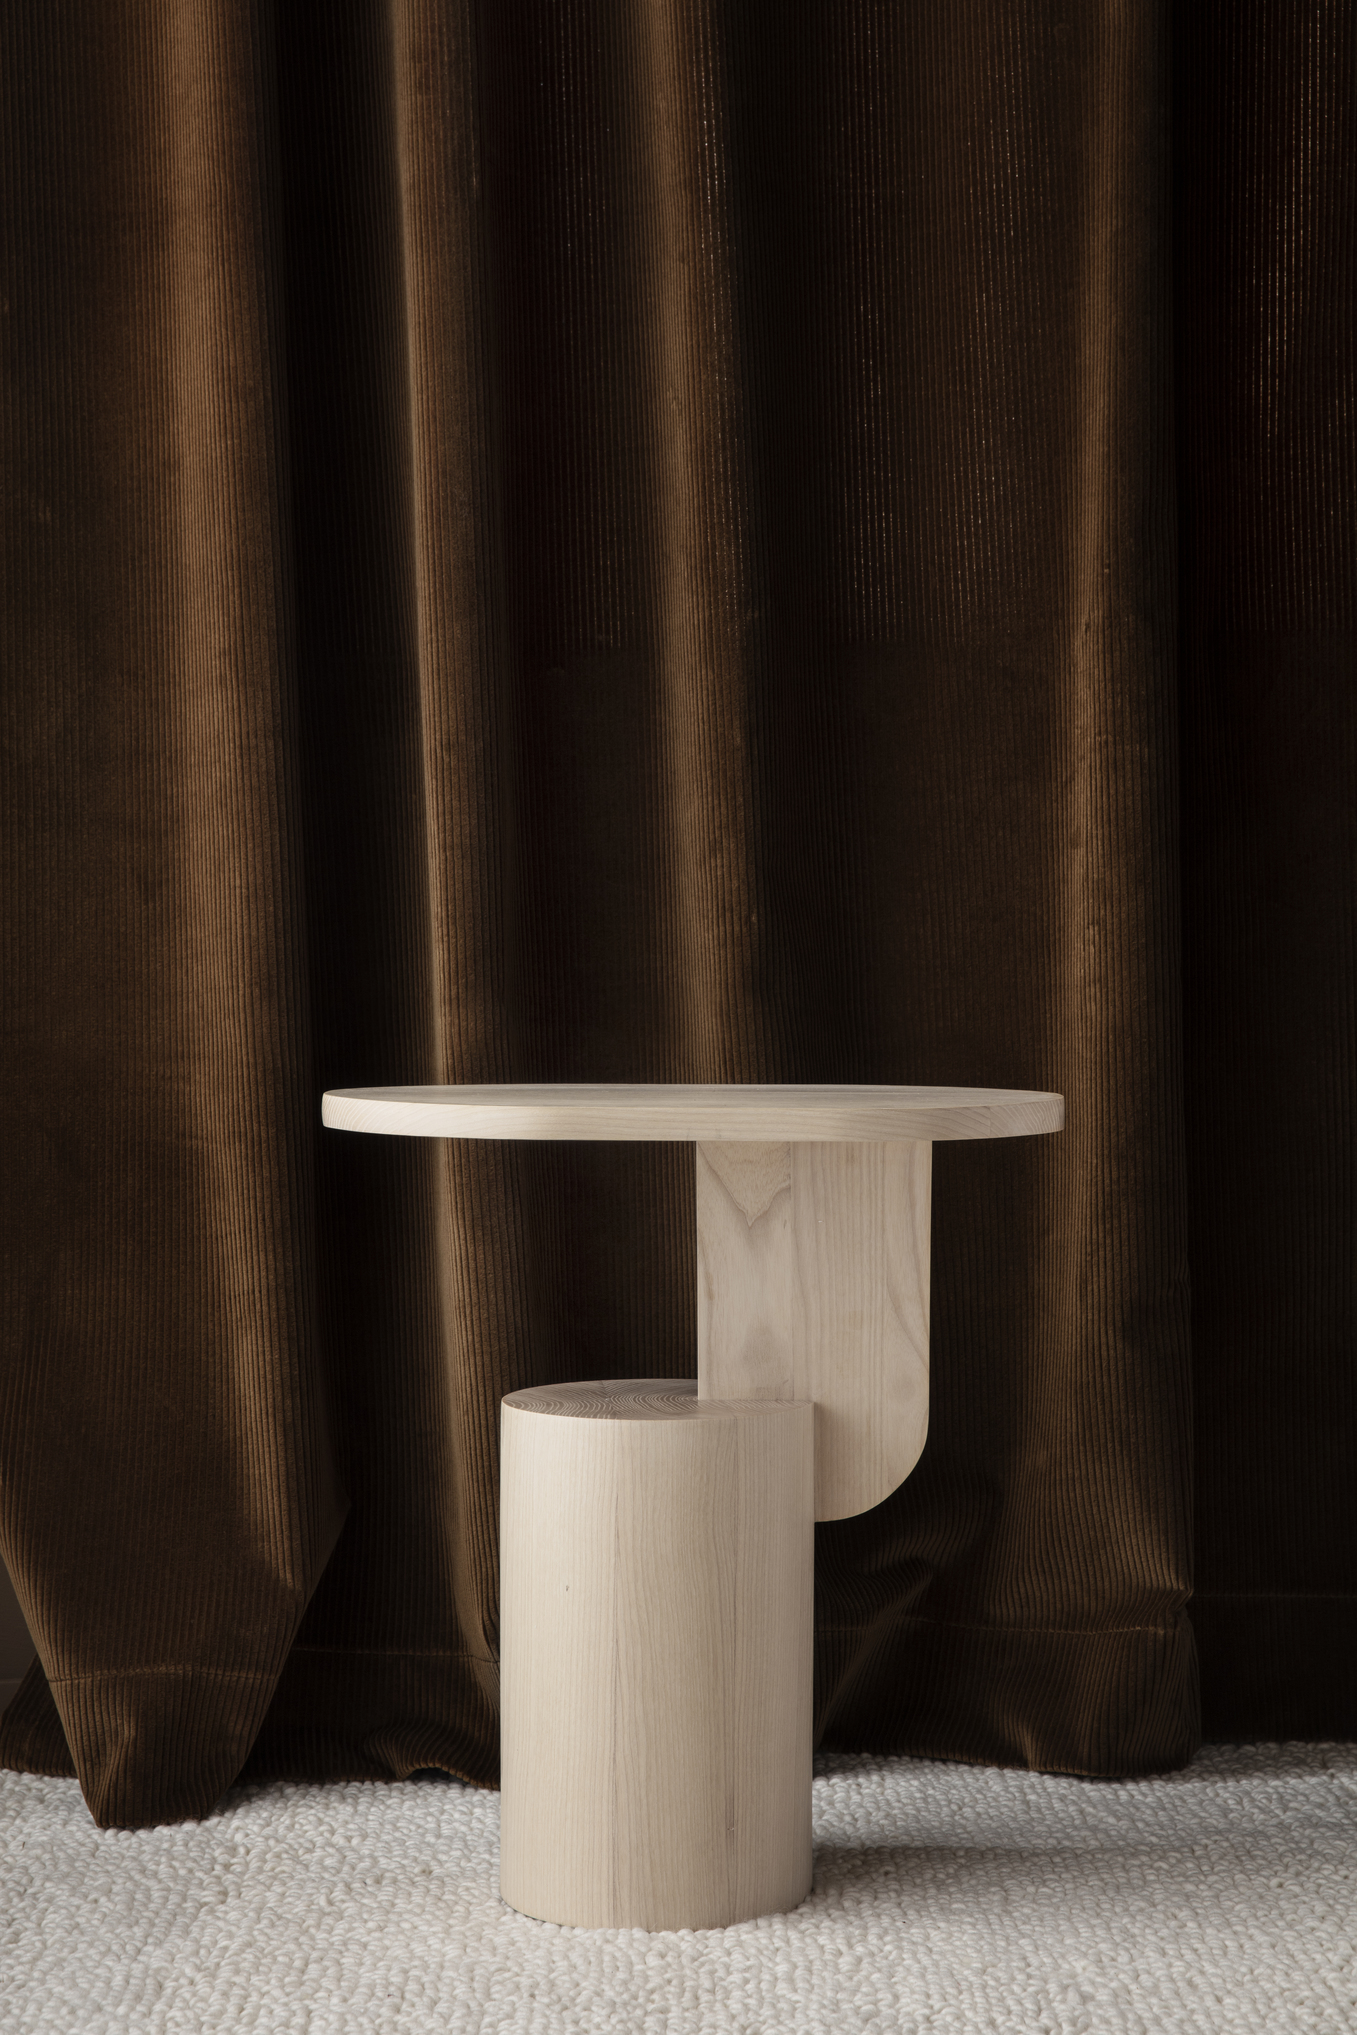 Insert side-table - Solid ash, sturdy & sculptural.